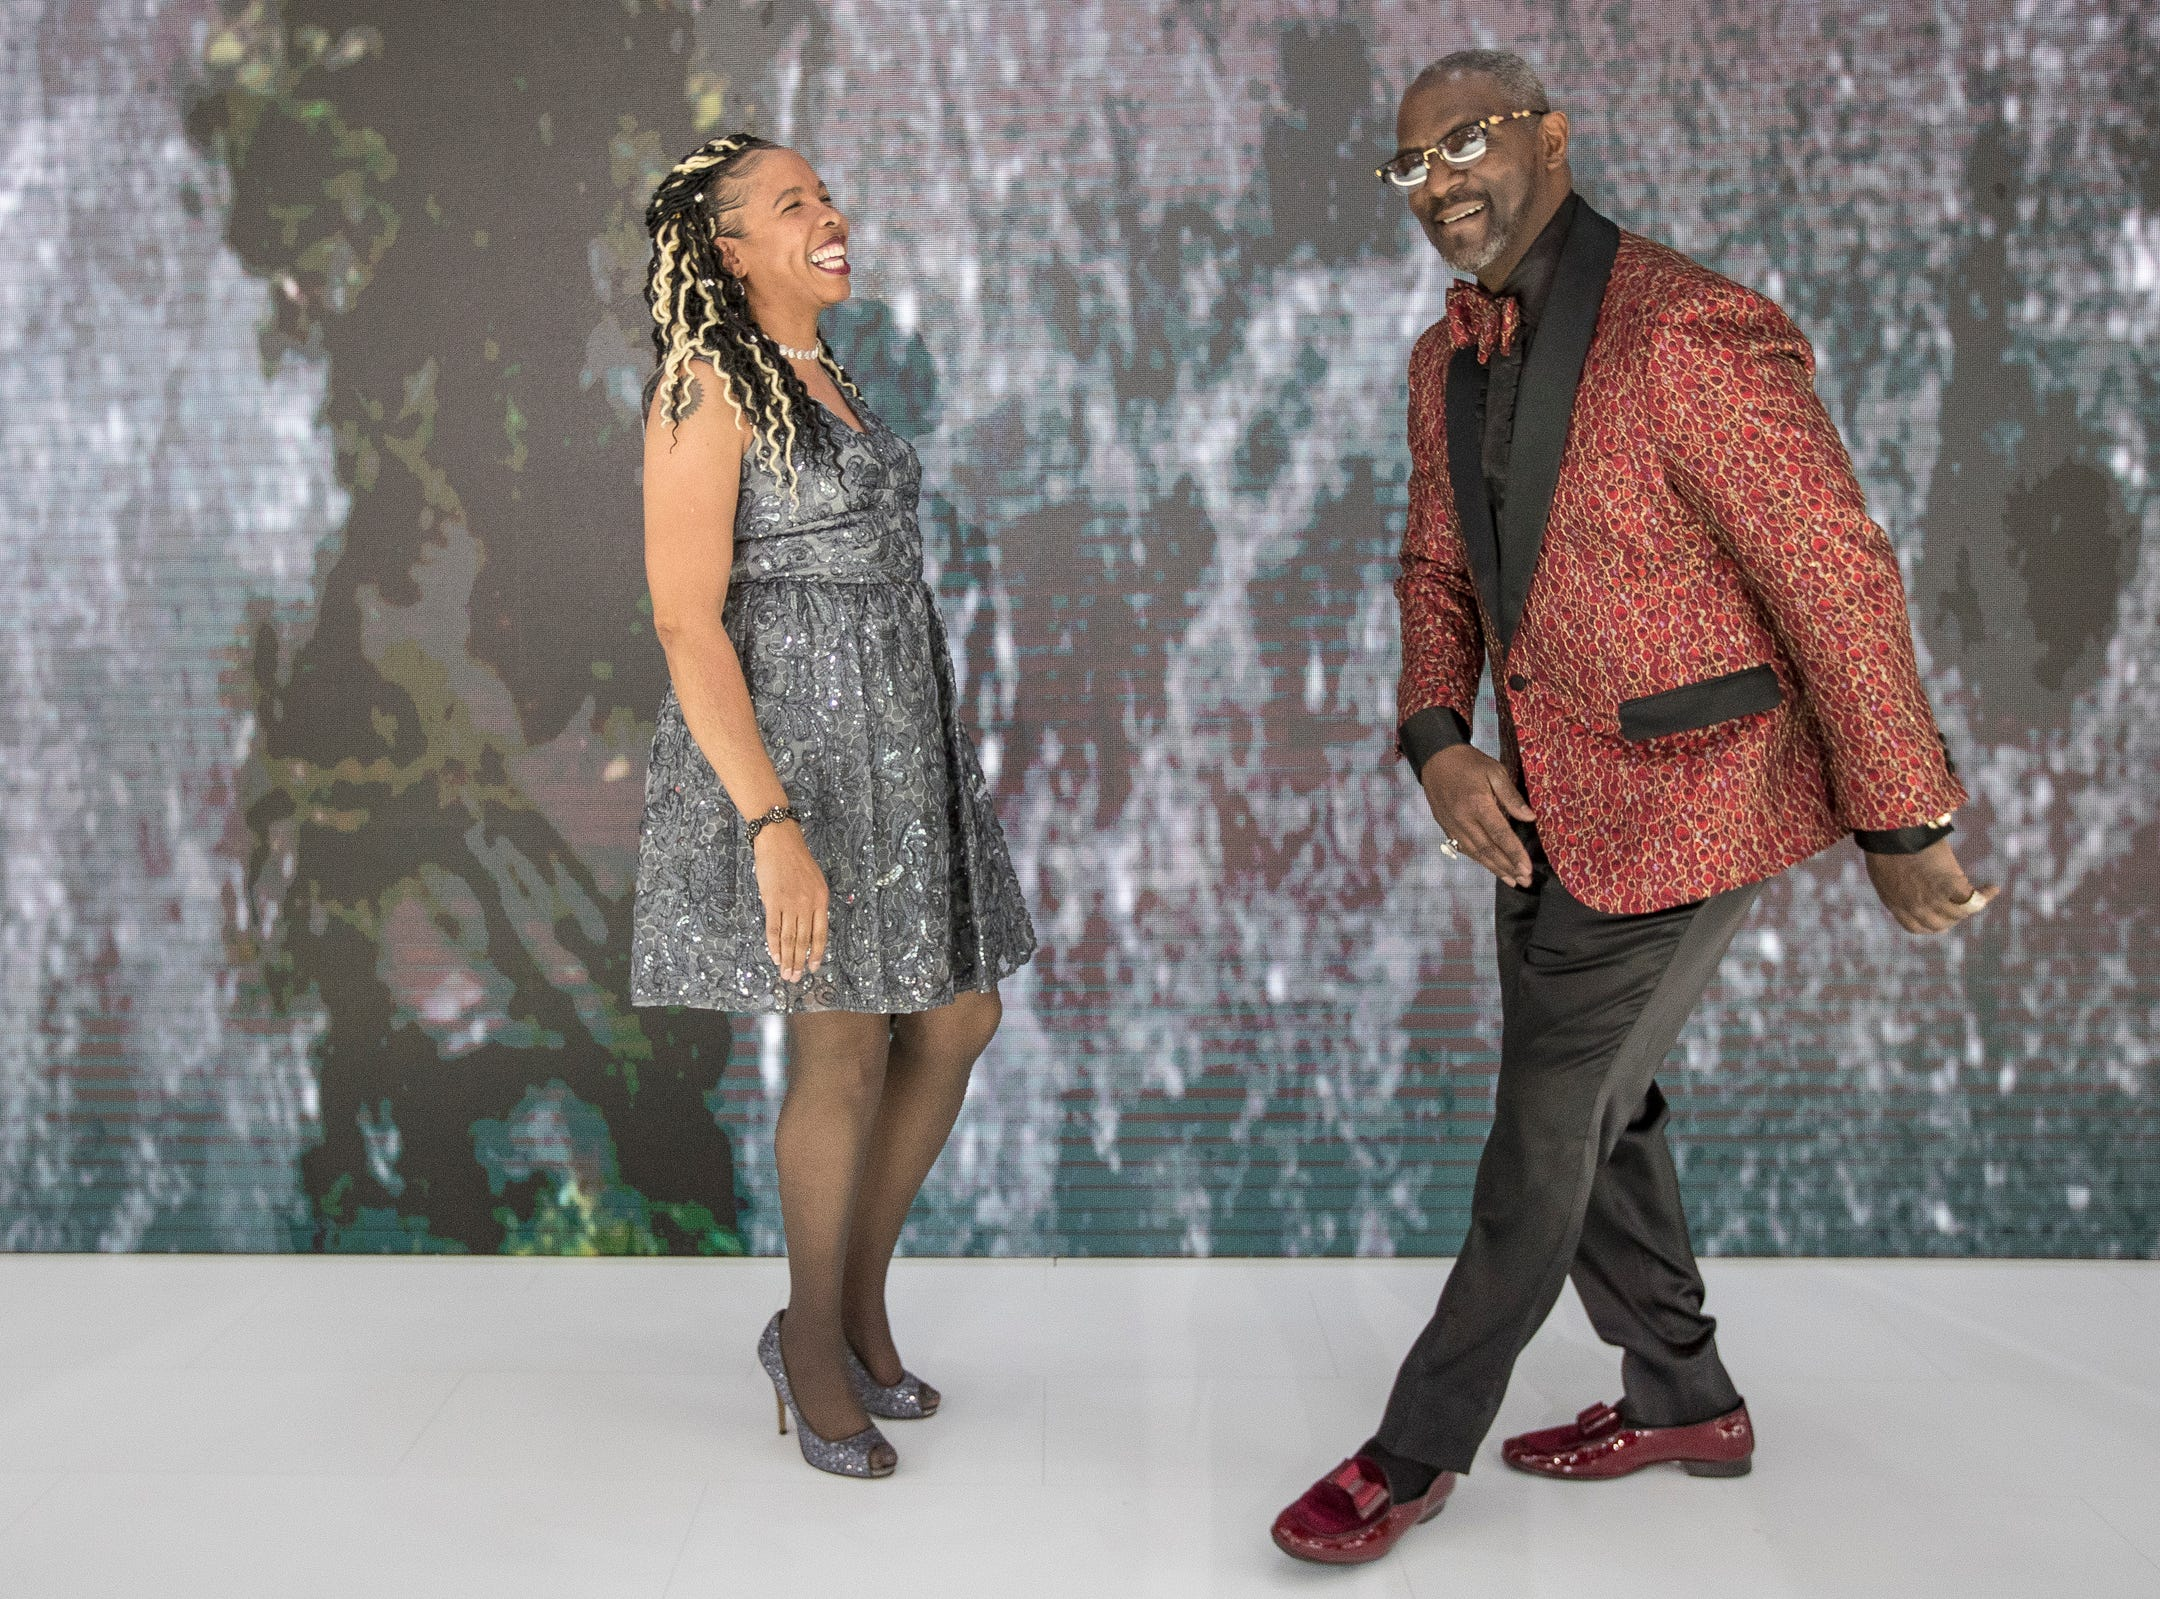 Kathy Parker laughs as her finance Darrell Wilson try to make a dance move at the Kia booth during the 2019 North American International Auto Show Charity Preview at Cobo Center in Detroit on Friday, January 18, 2019.